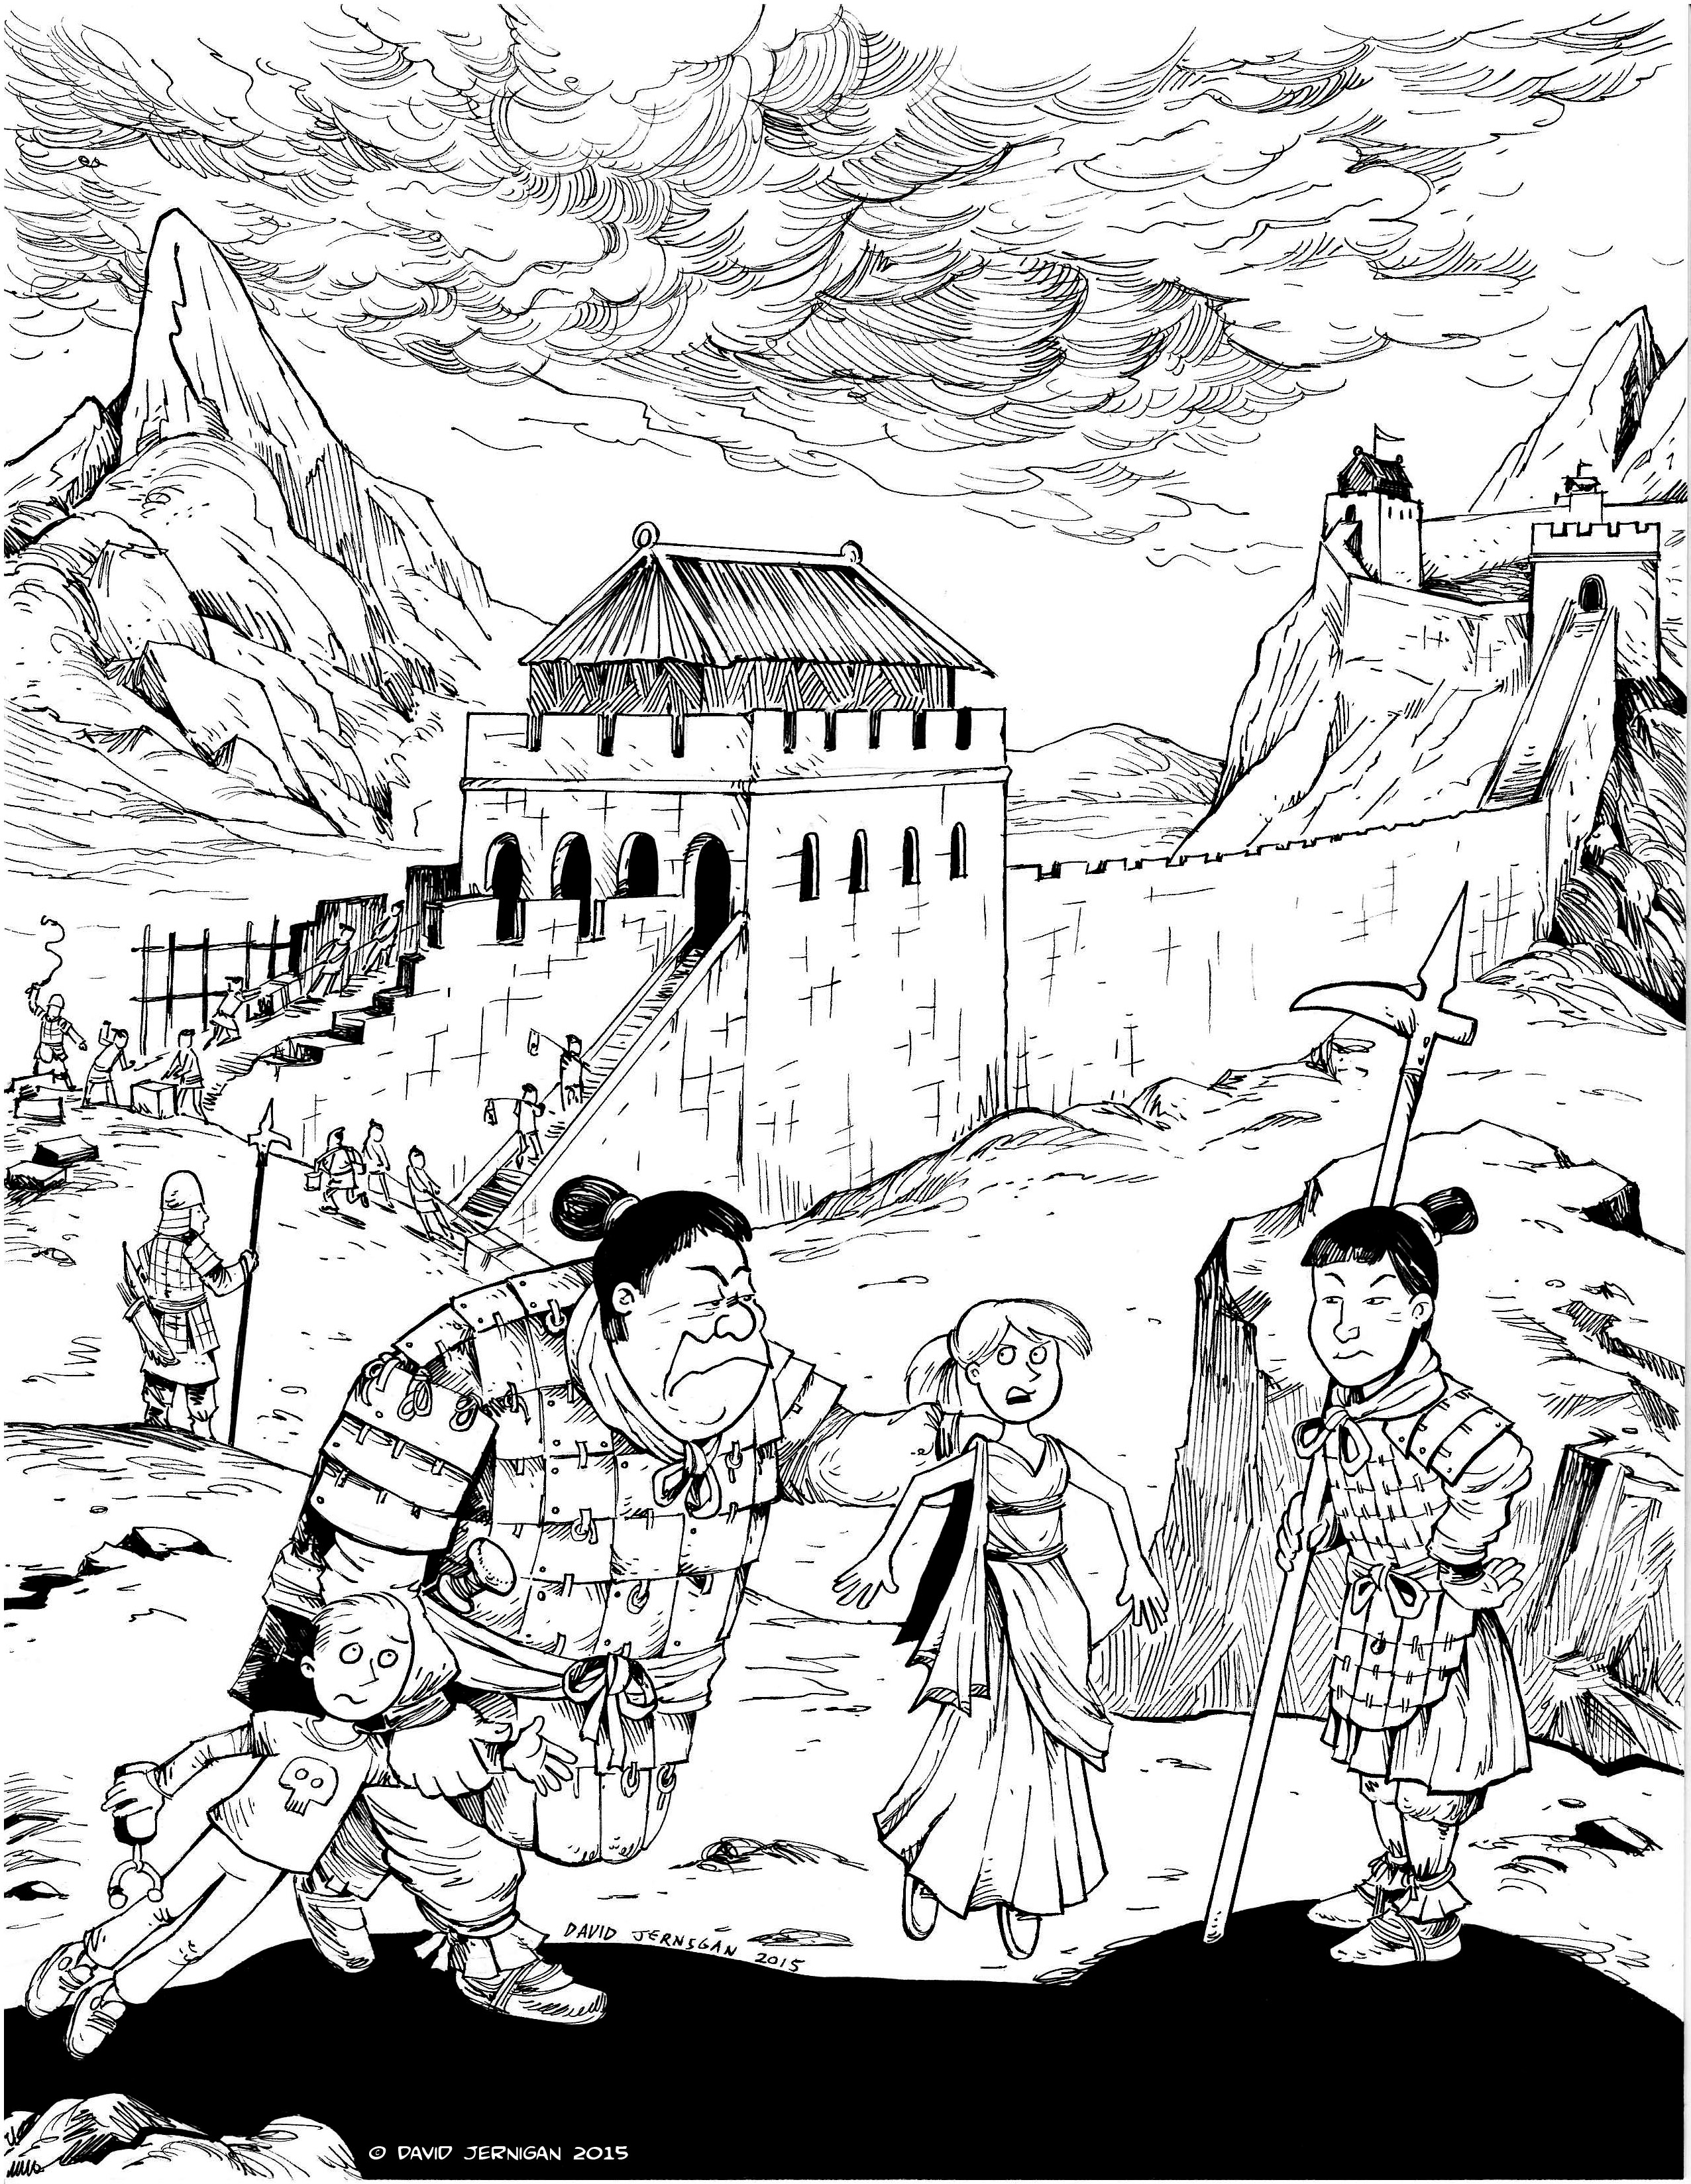 Coloring sheet great wall of china - Clip Art Great Wall Of China Coloring Page Sketch Blog Sketcharound Page 3 Great Wall Of